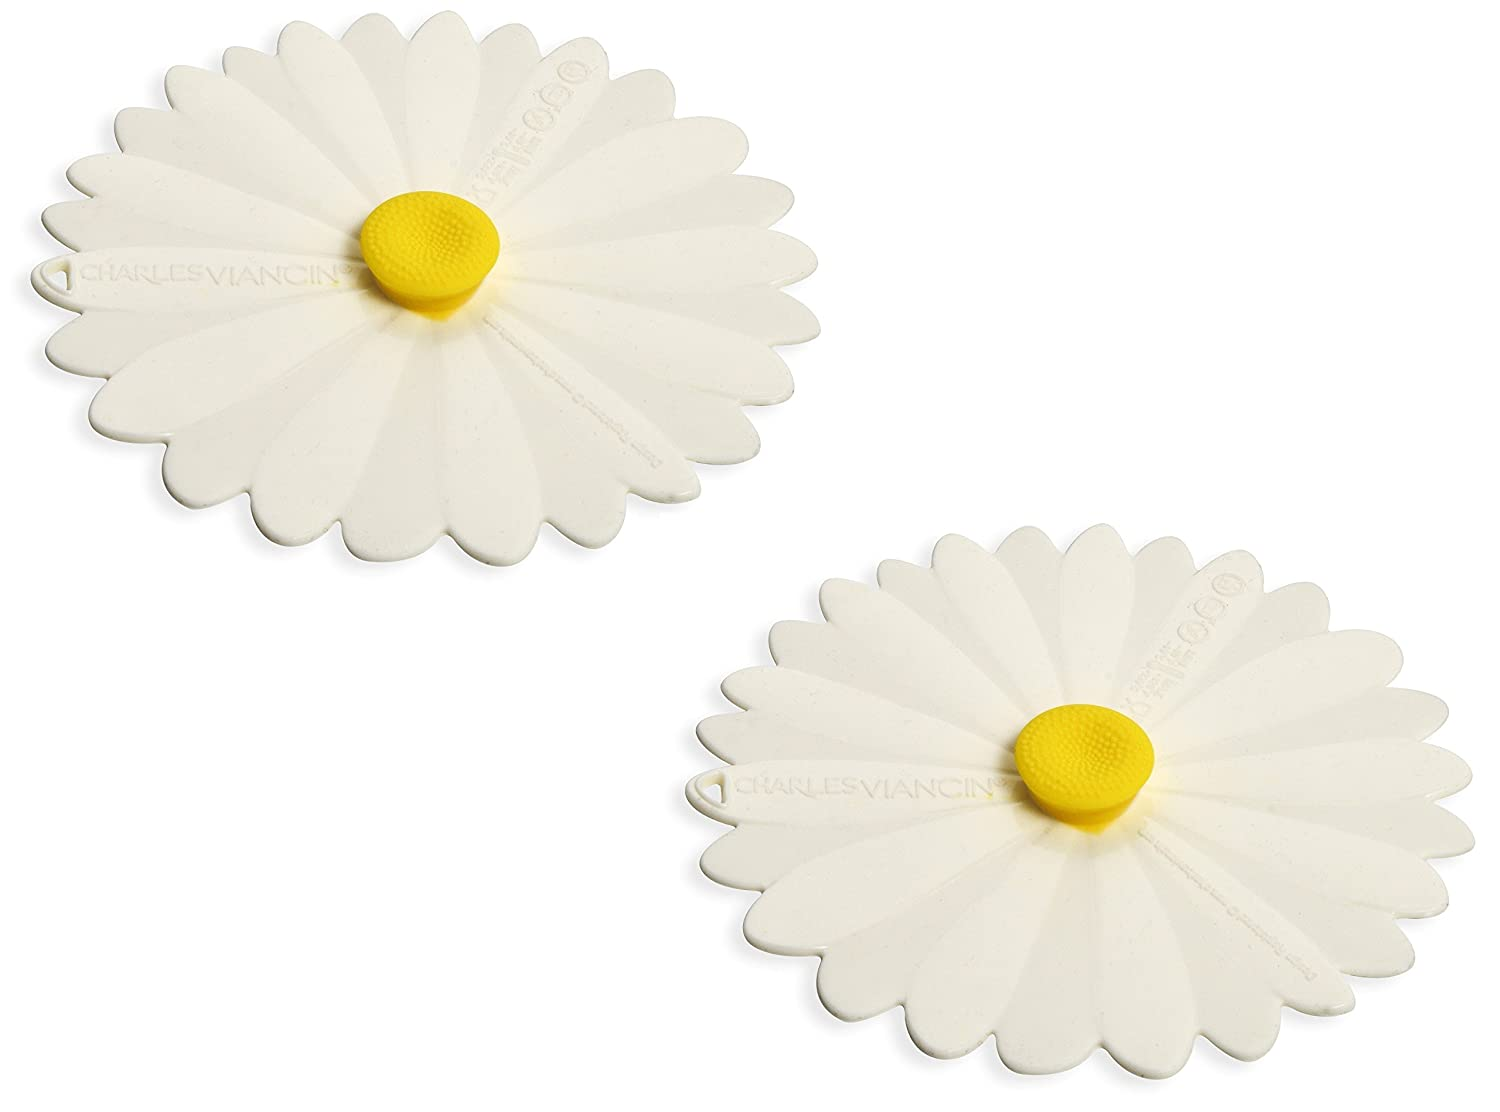 Charles Viancin Airtight Silicone Drink Covers, Set of 2, White Daisy 2510